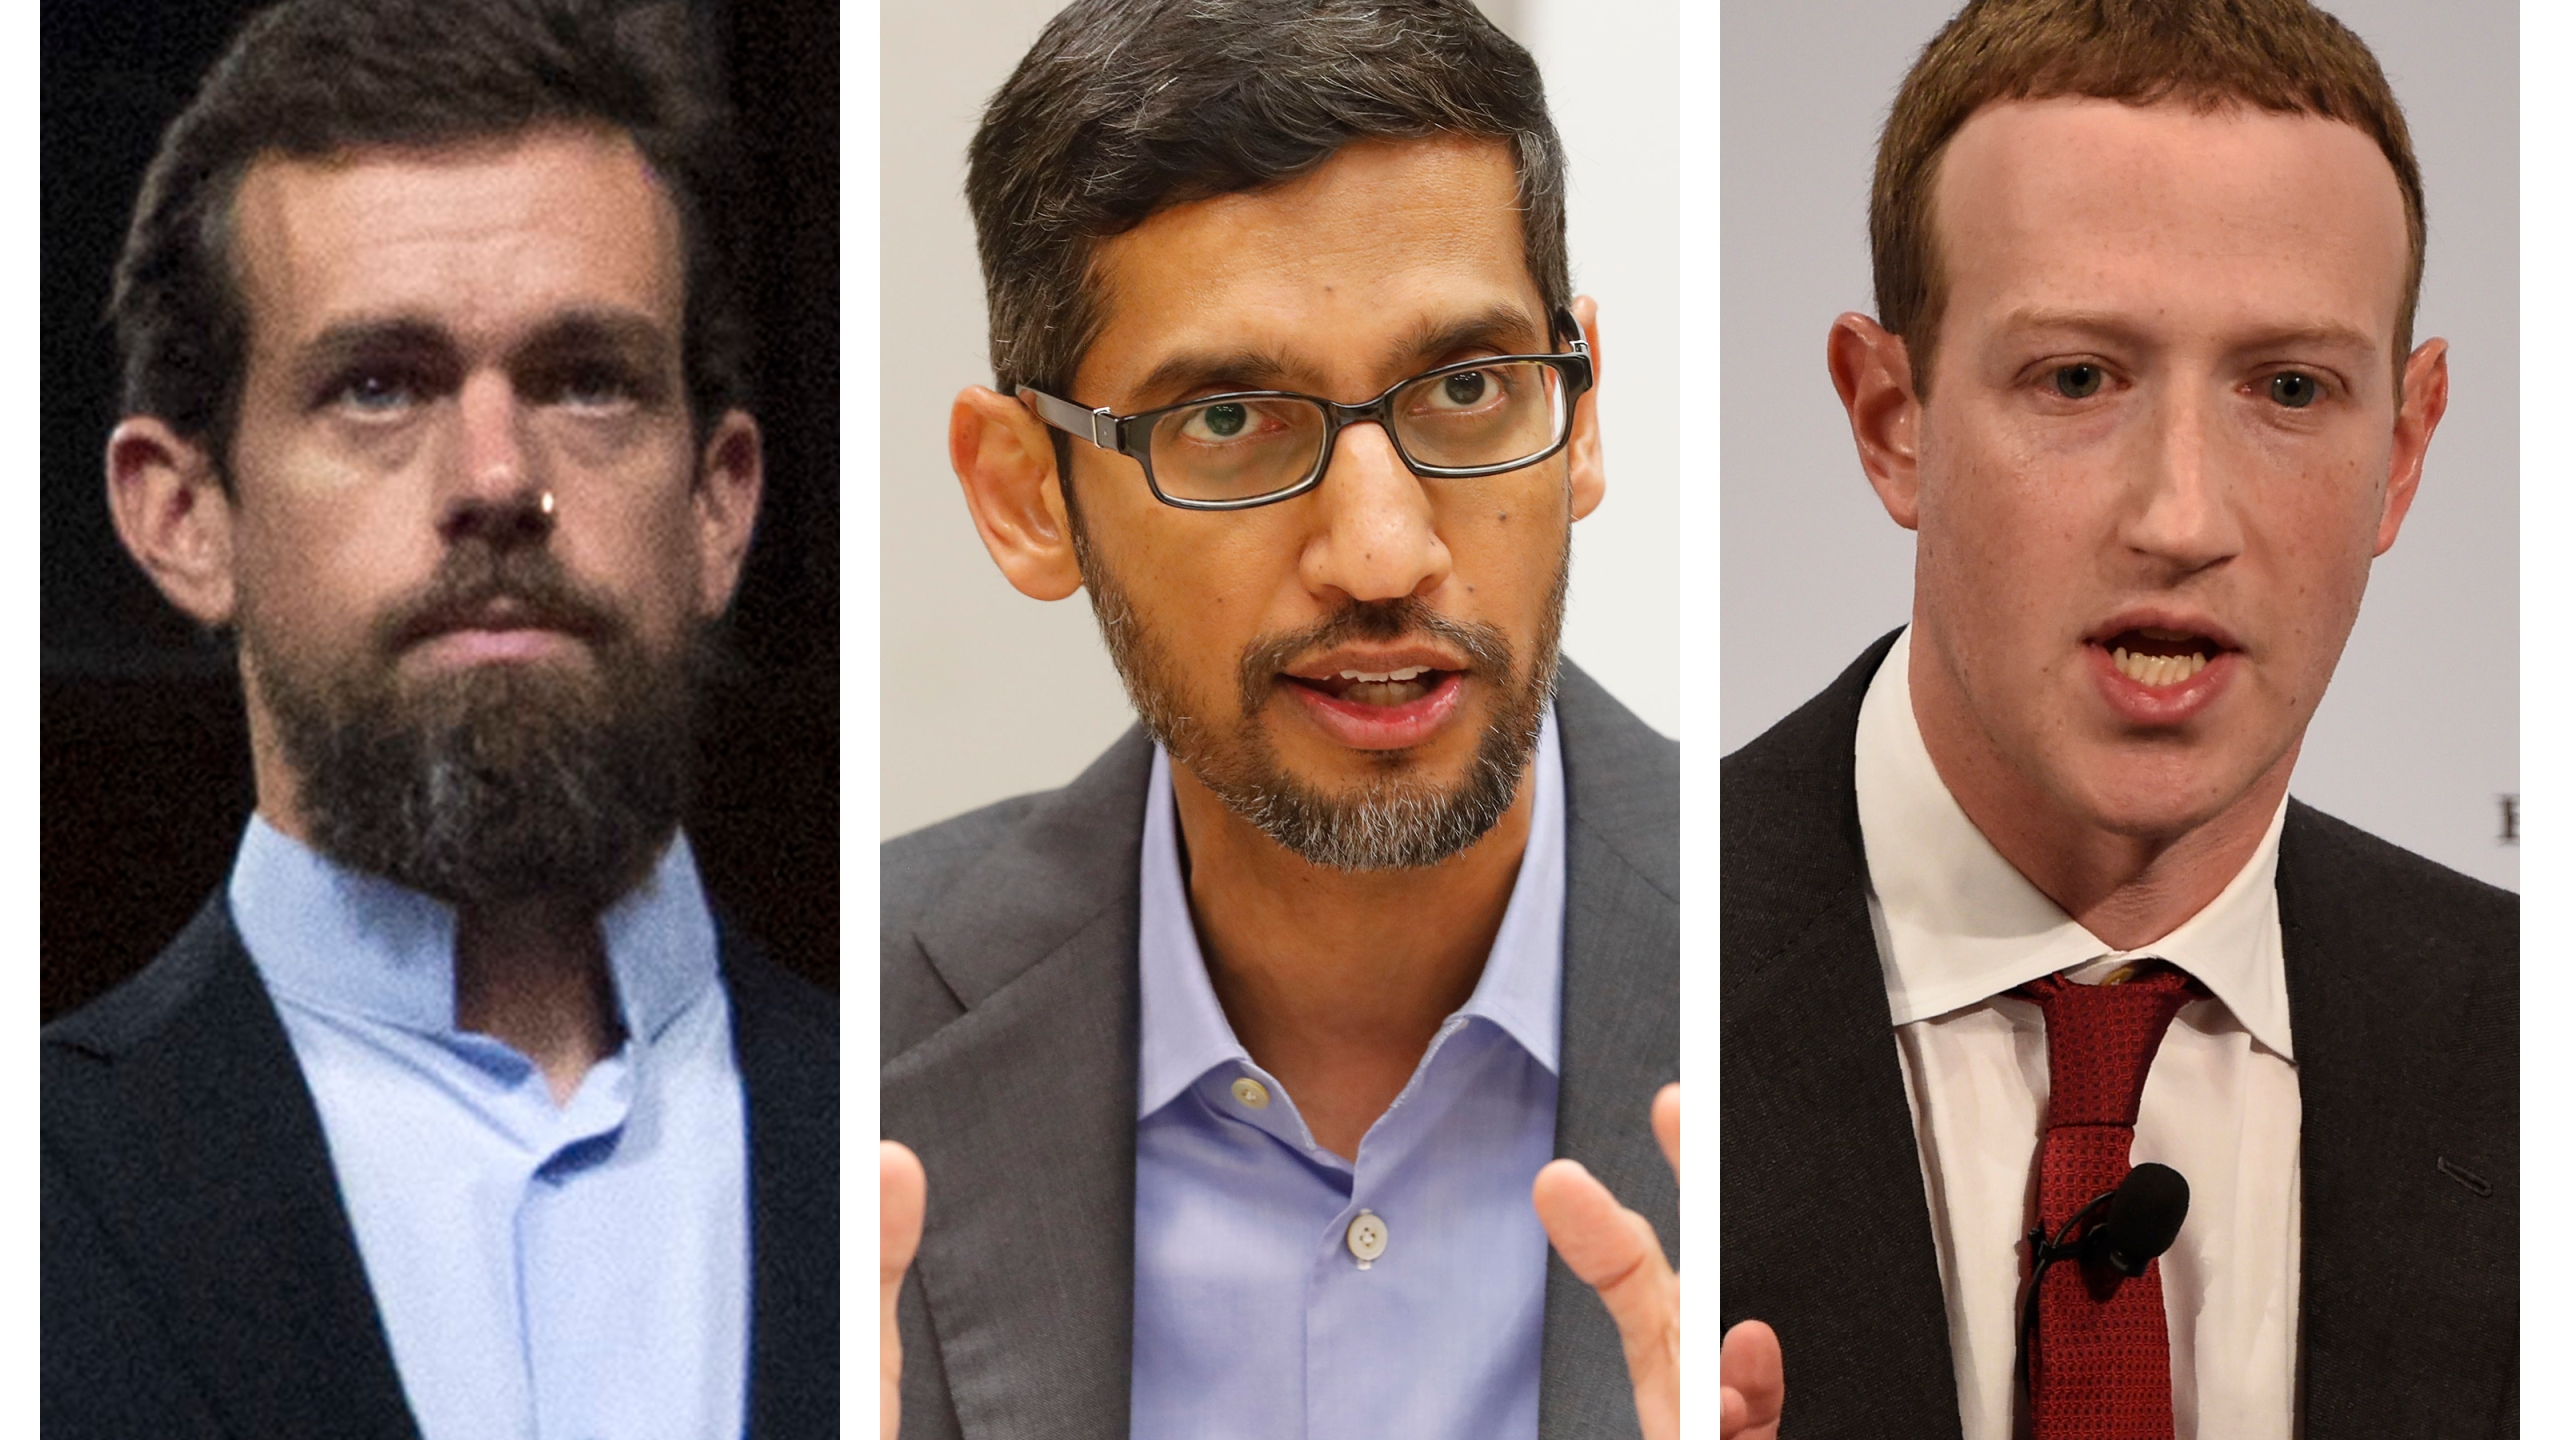 This combination of 2018-2020 photos shows, from left, Twitter CEO Jack Dorsey, Google CEO Sundar Pichai, and Facebook CEO Mark Zuckerberg. (AP Photo/Jose Luis Magana, LM Otero, Jens Meyer)